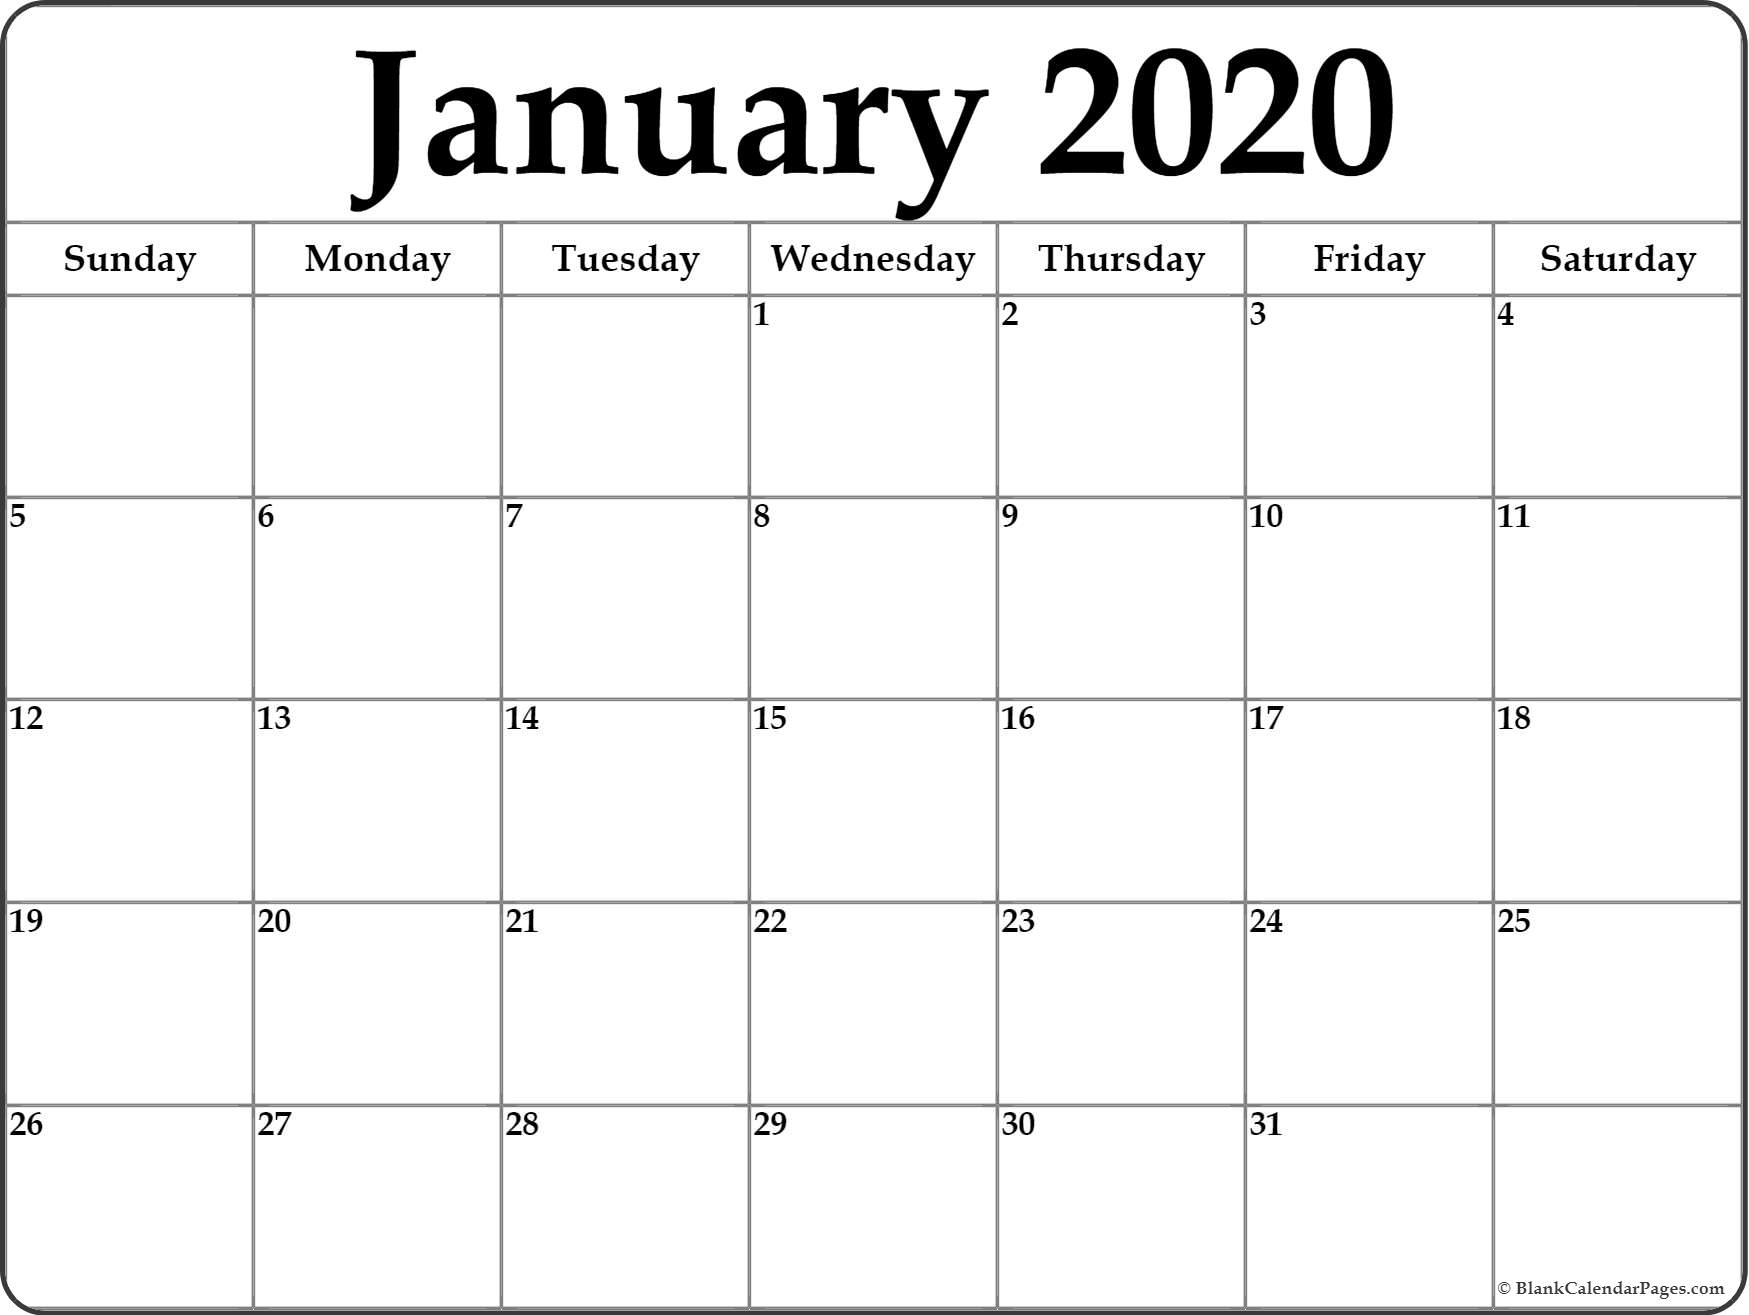 January 2020 Calendar | Free Printable Monthly Calendars within Free Printable Monthly 2020 Calendar